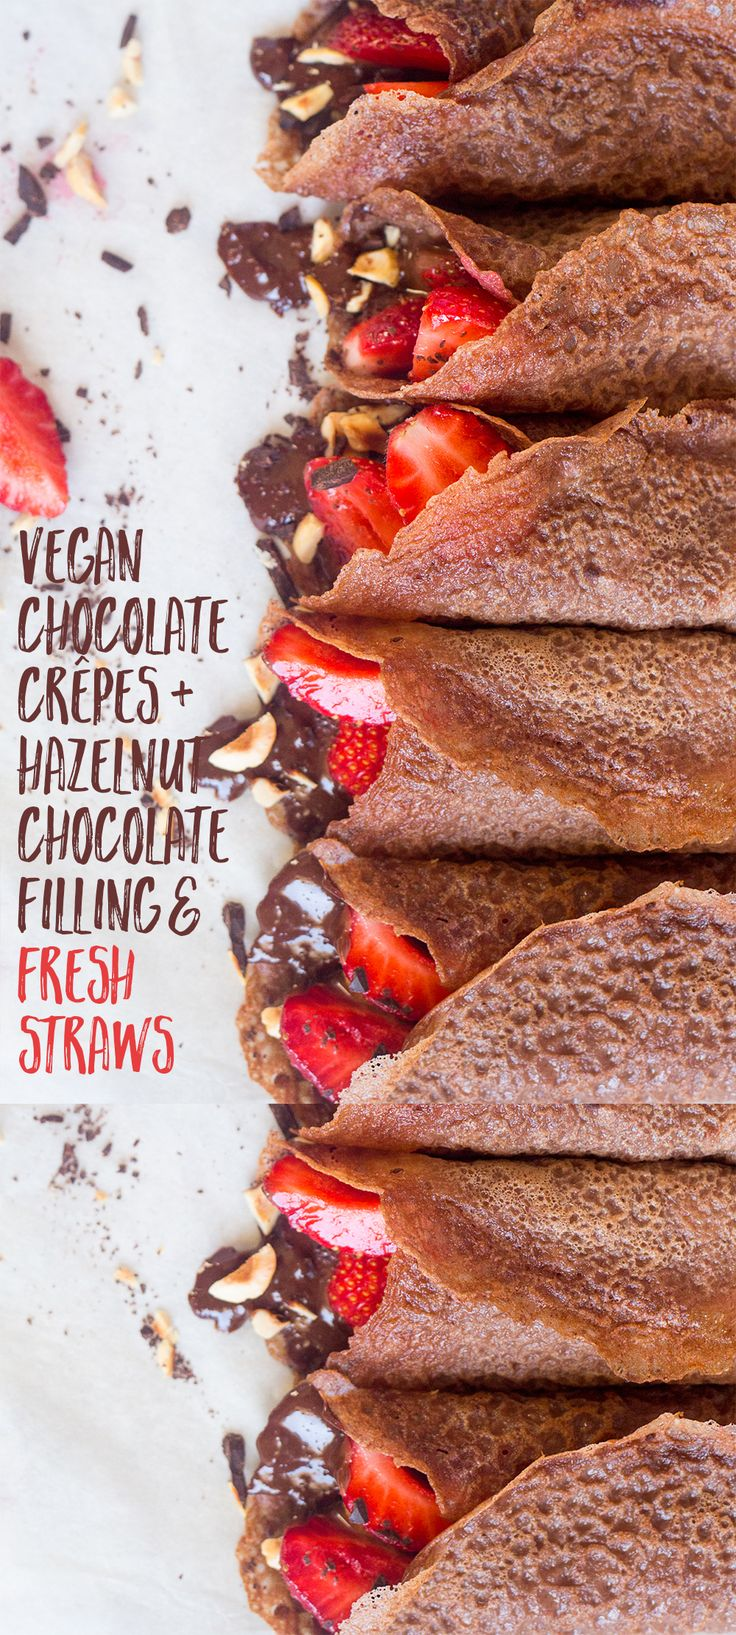 Vegan Chocolate Crêpes with Hazelnut Chocolate Filling and Fresh Strawberries  |  Lazy Cat Kitchen  |  V